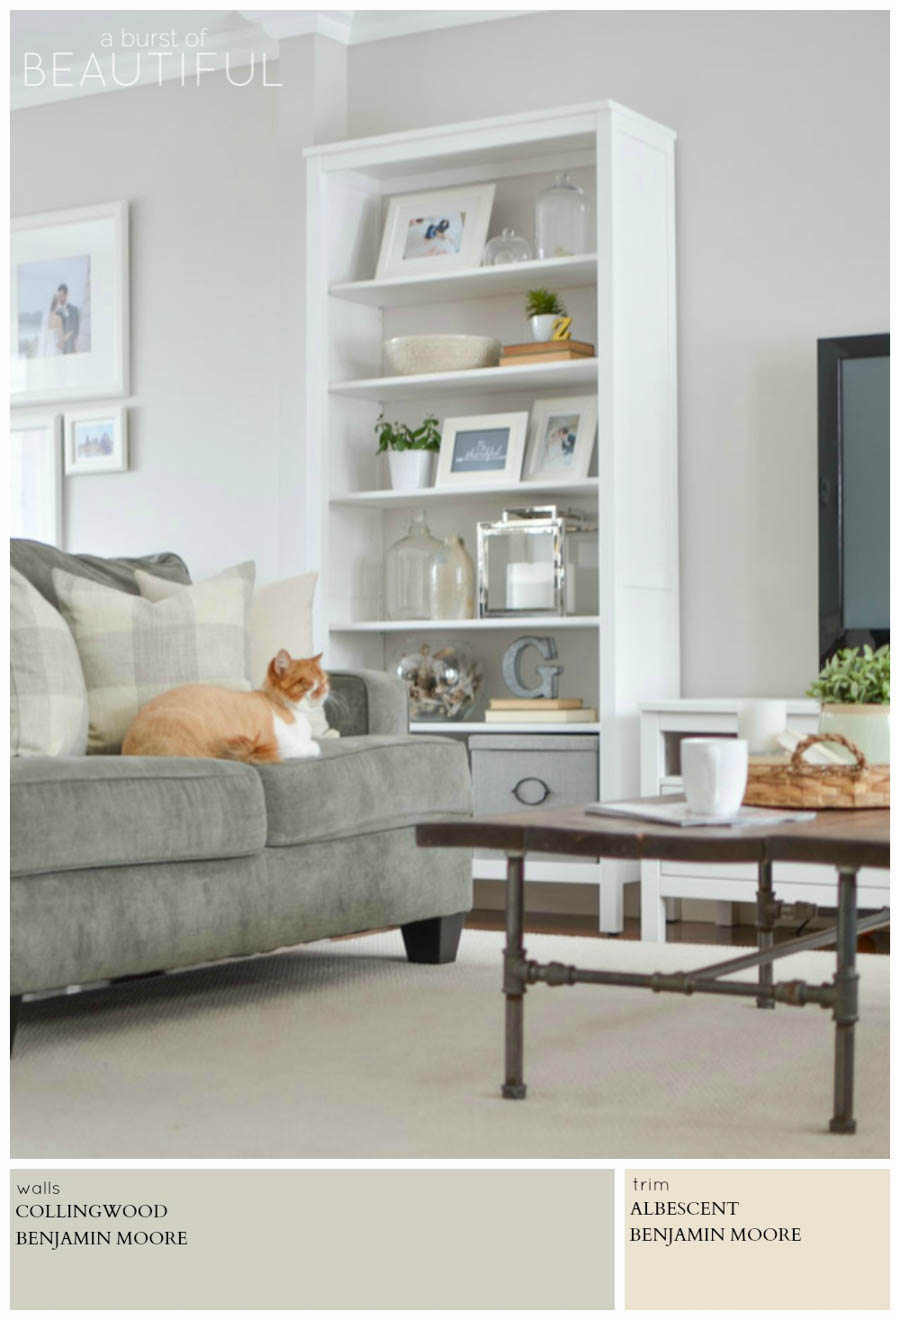 Collingwood by Benjamin Moore is a classic and versatile color for any space. A Burst of Beautiful shares the perfect Modern Farmhouse Neutral Paint Colors for a cozy and inviting home   A Burst of Beautiful